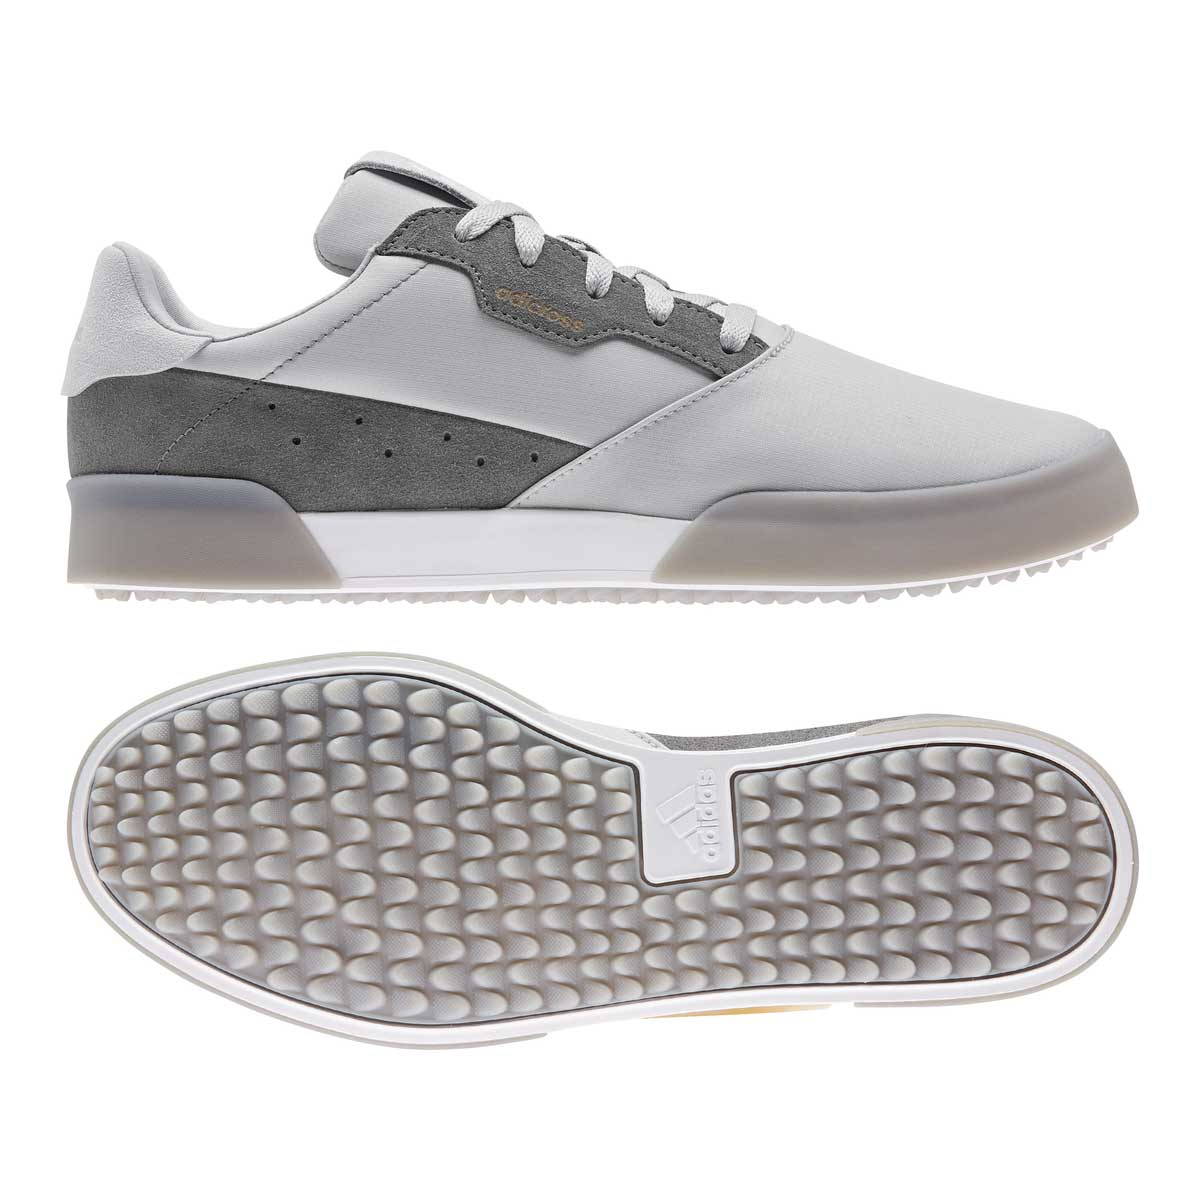 Adidas Men's Adicross Retro Grey/White Spikeless Golf Shoe